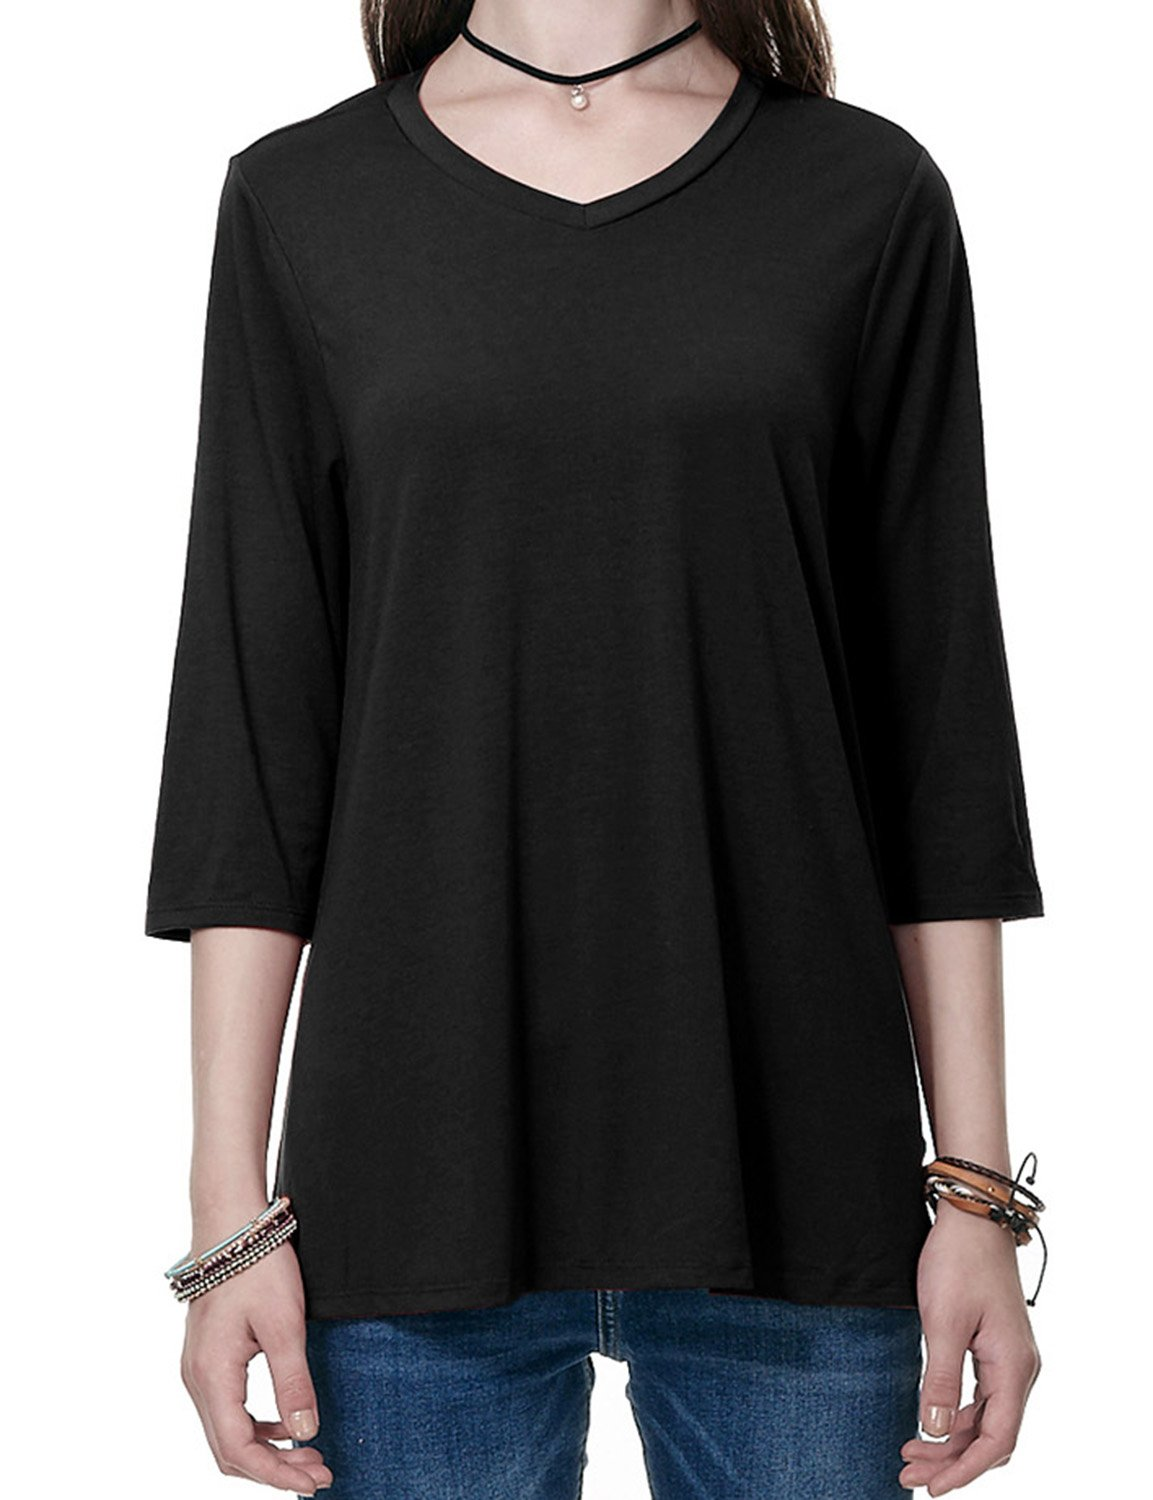 Regna X Boho for Woman Loose fit wear to Work Long Shirts Black Extra Large Pleat Back Shirts Shirt Long tee Tunics Blouses